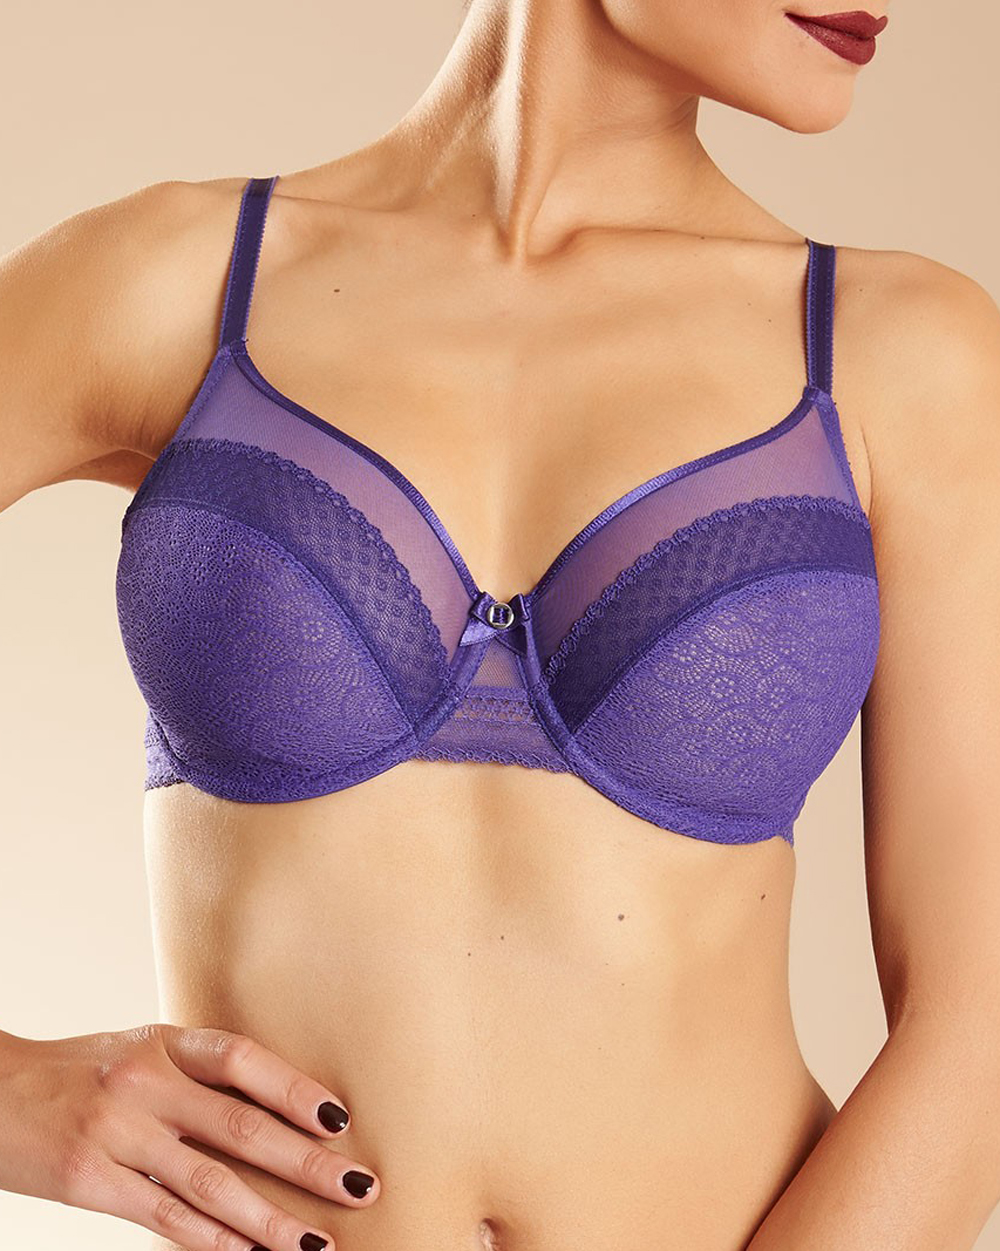 Festivité Lace Unlined Bra